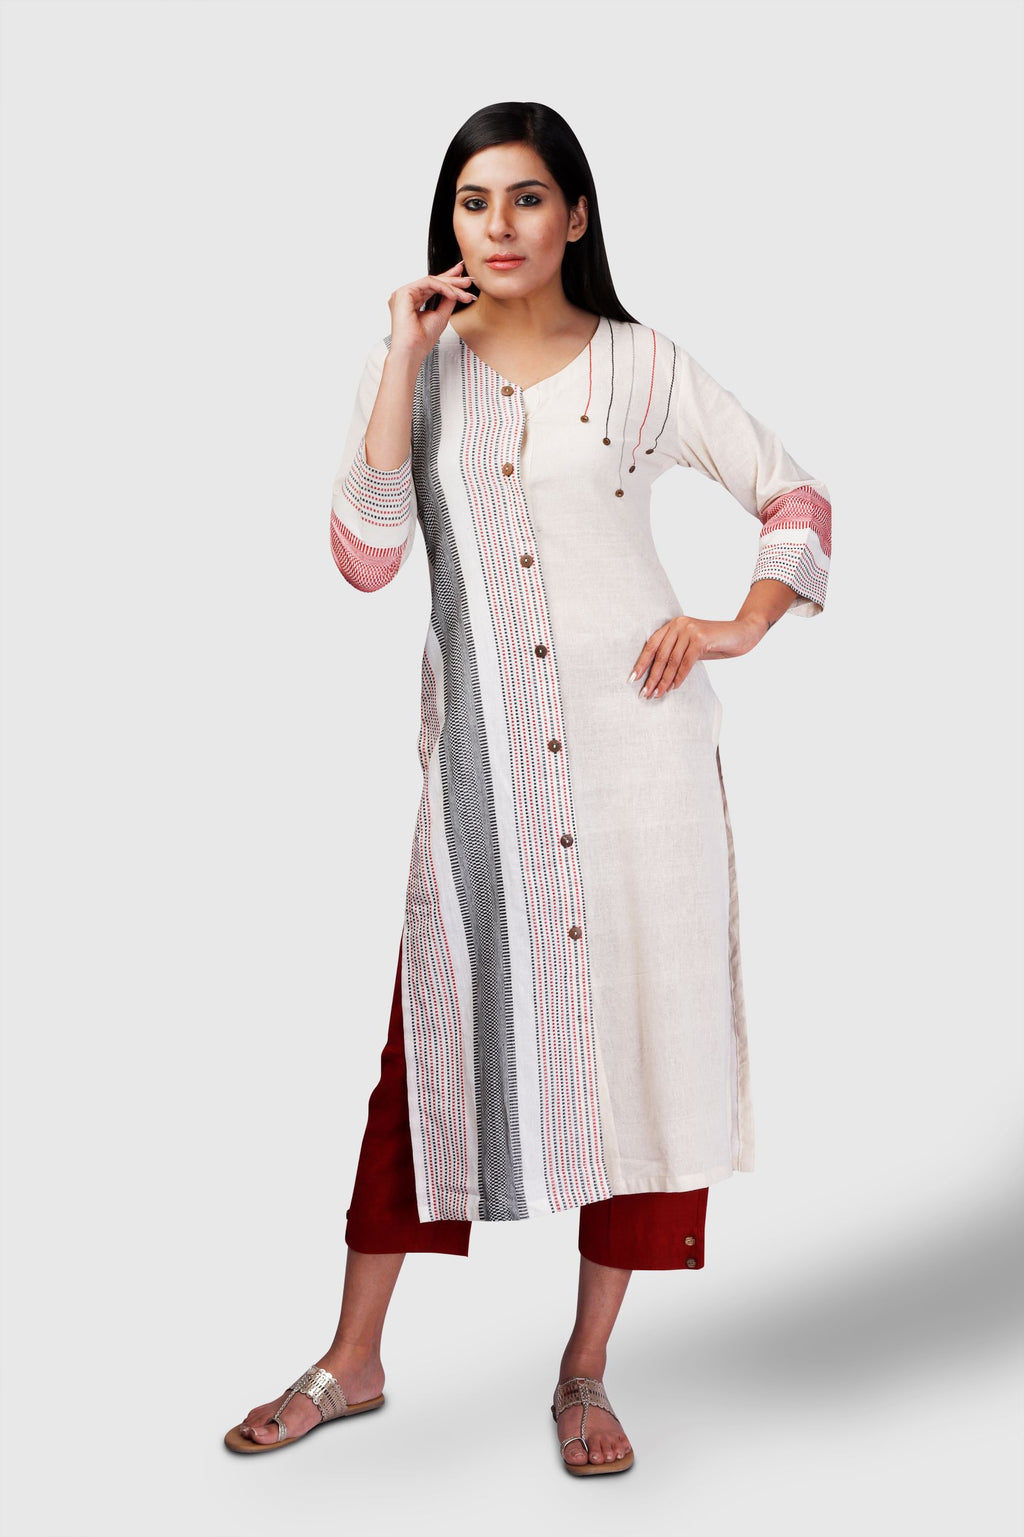 Off-White Kotpad Button embroidery Kurta - Kapaas N Resham